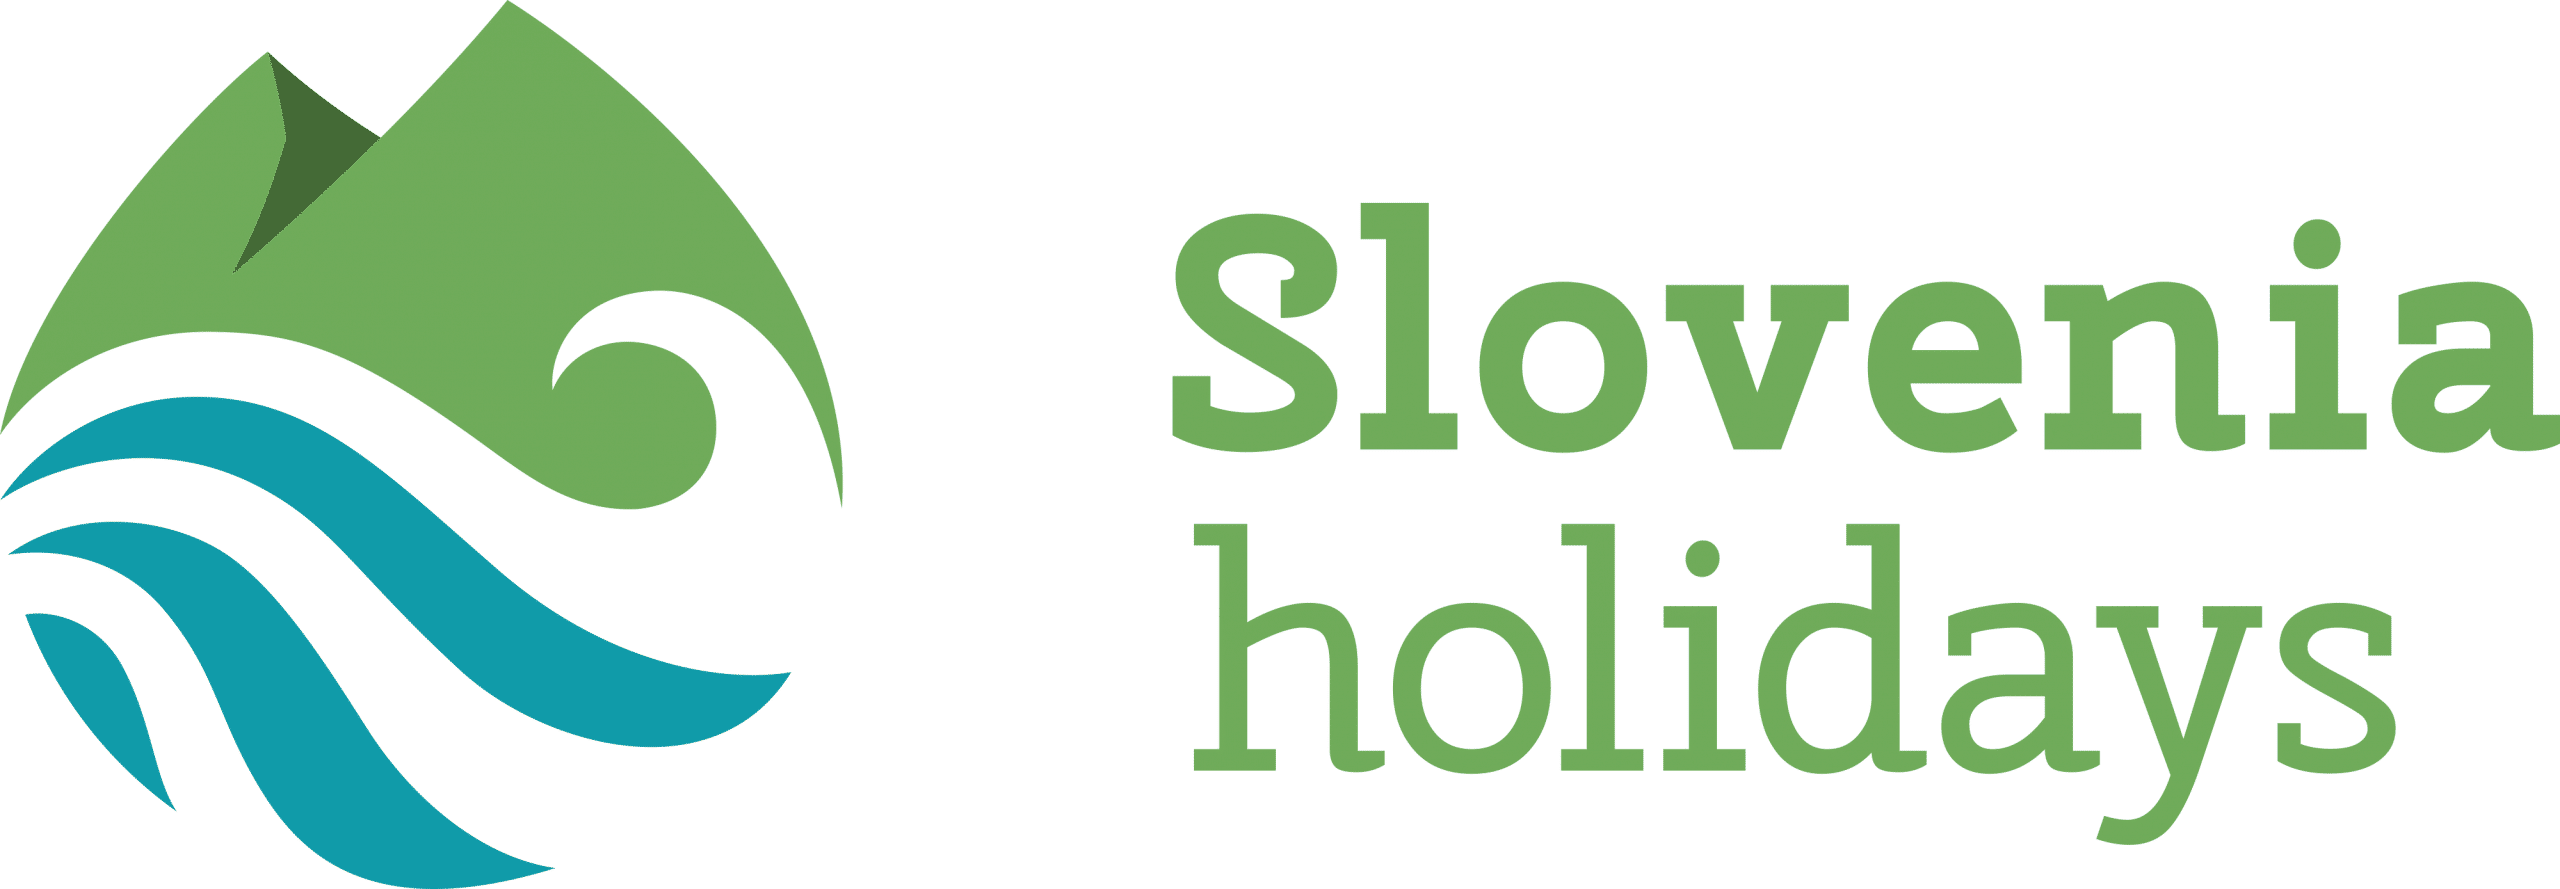 eslovenia-holidays-logo-color